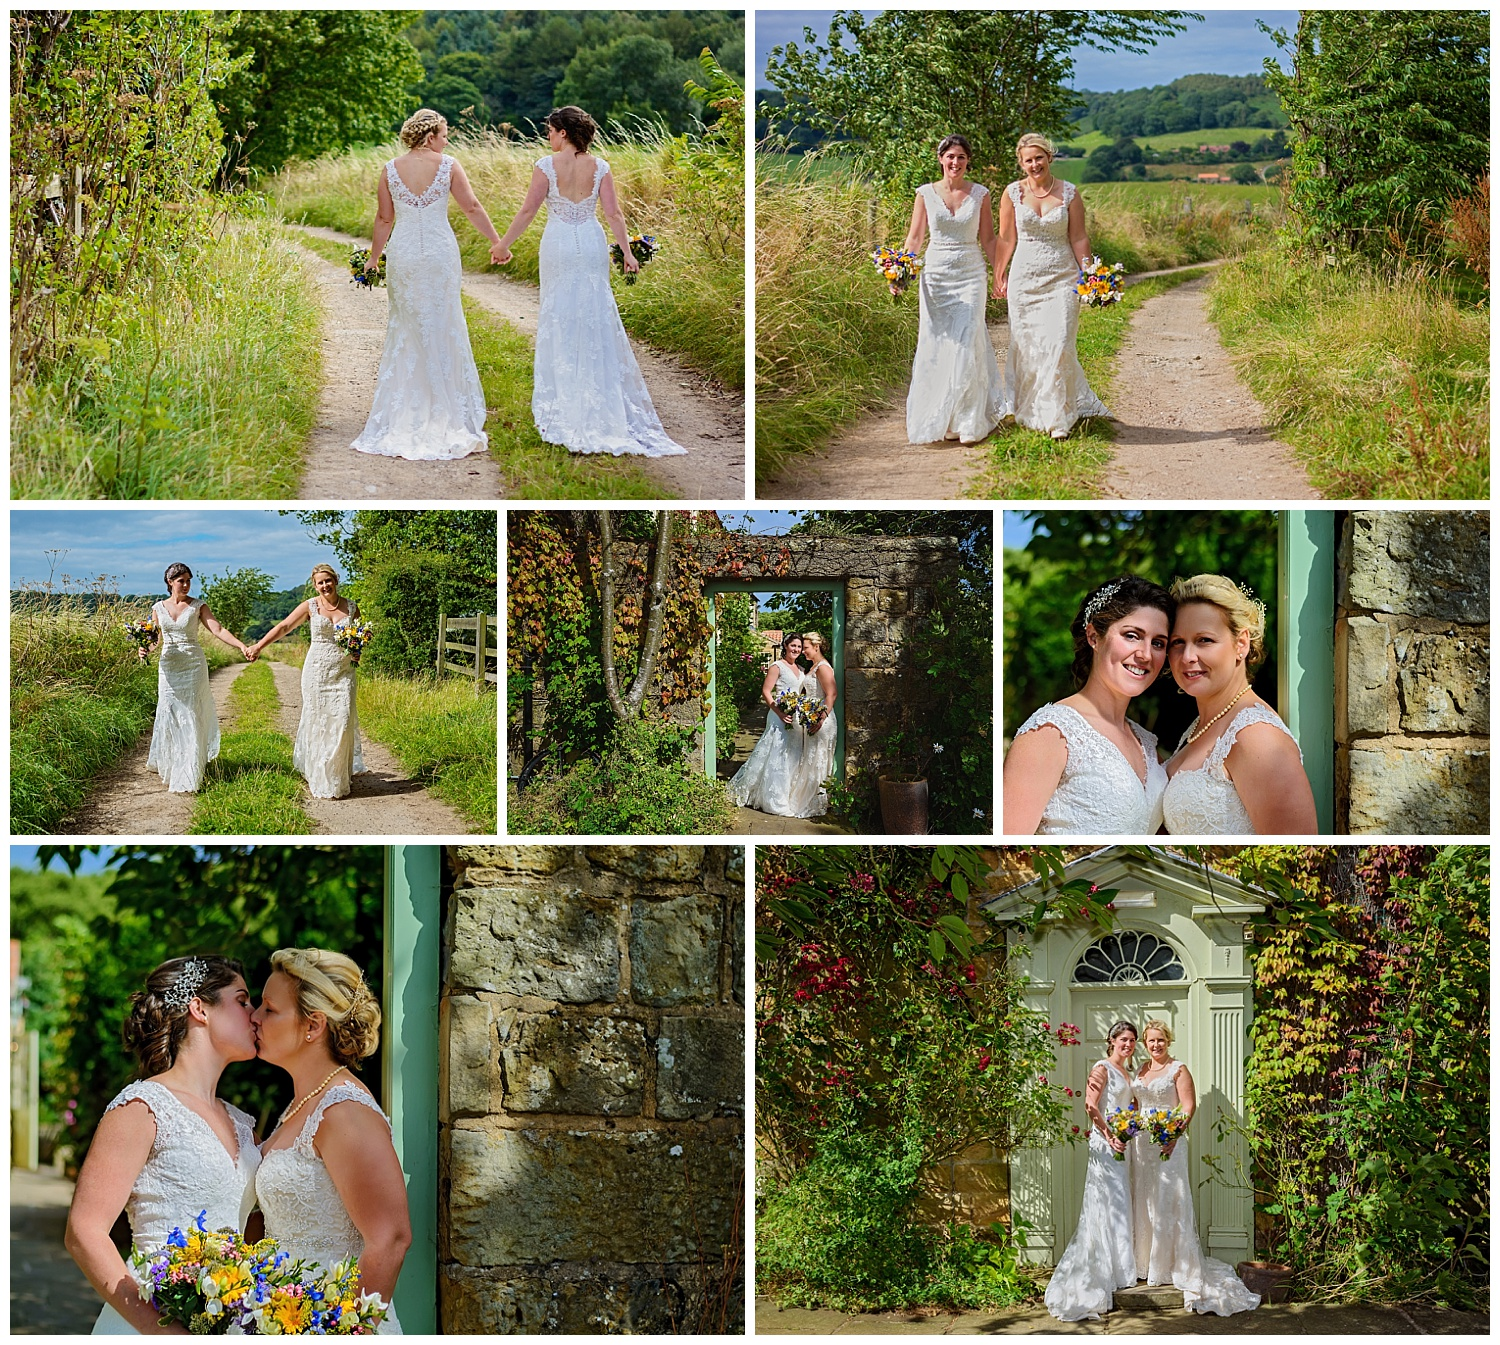 brides walking hand in hand | yorkshire photographer